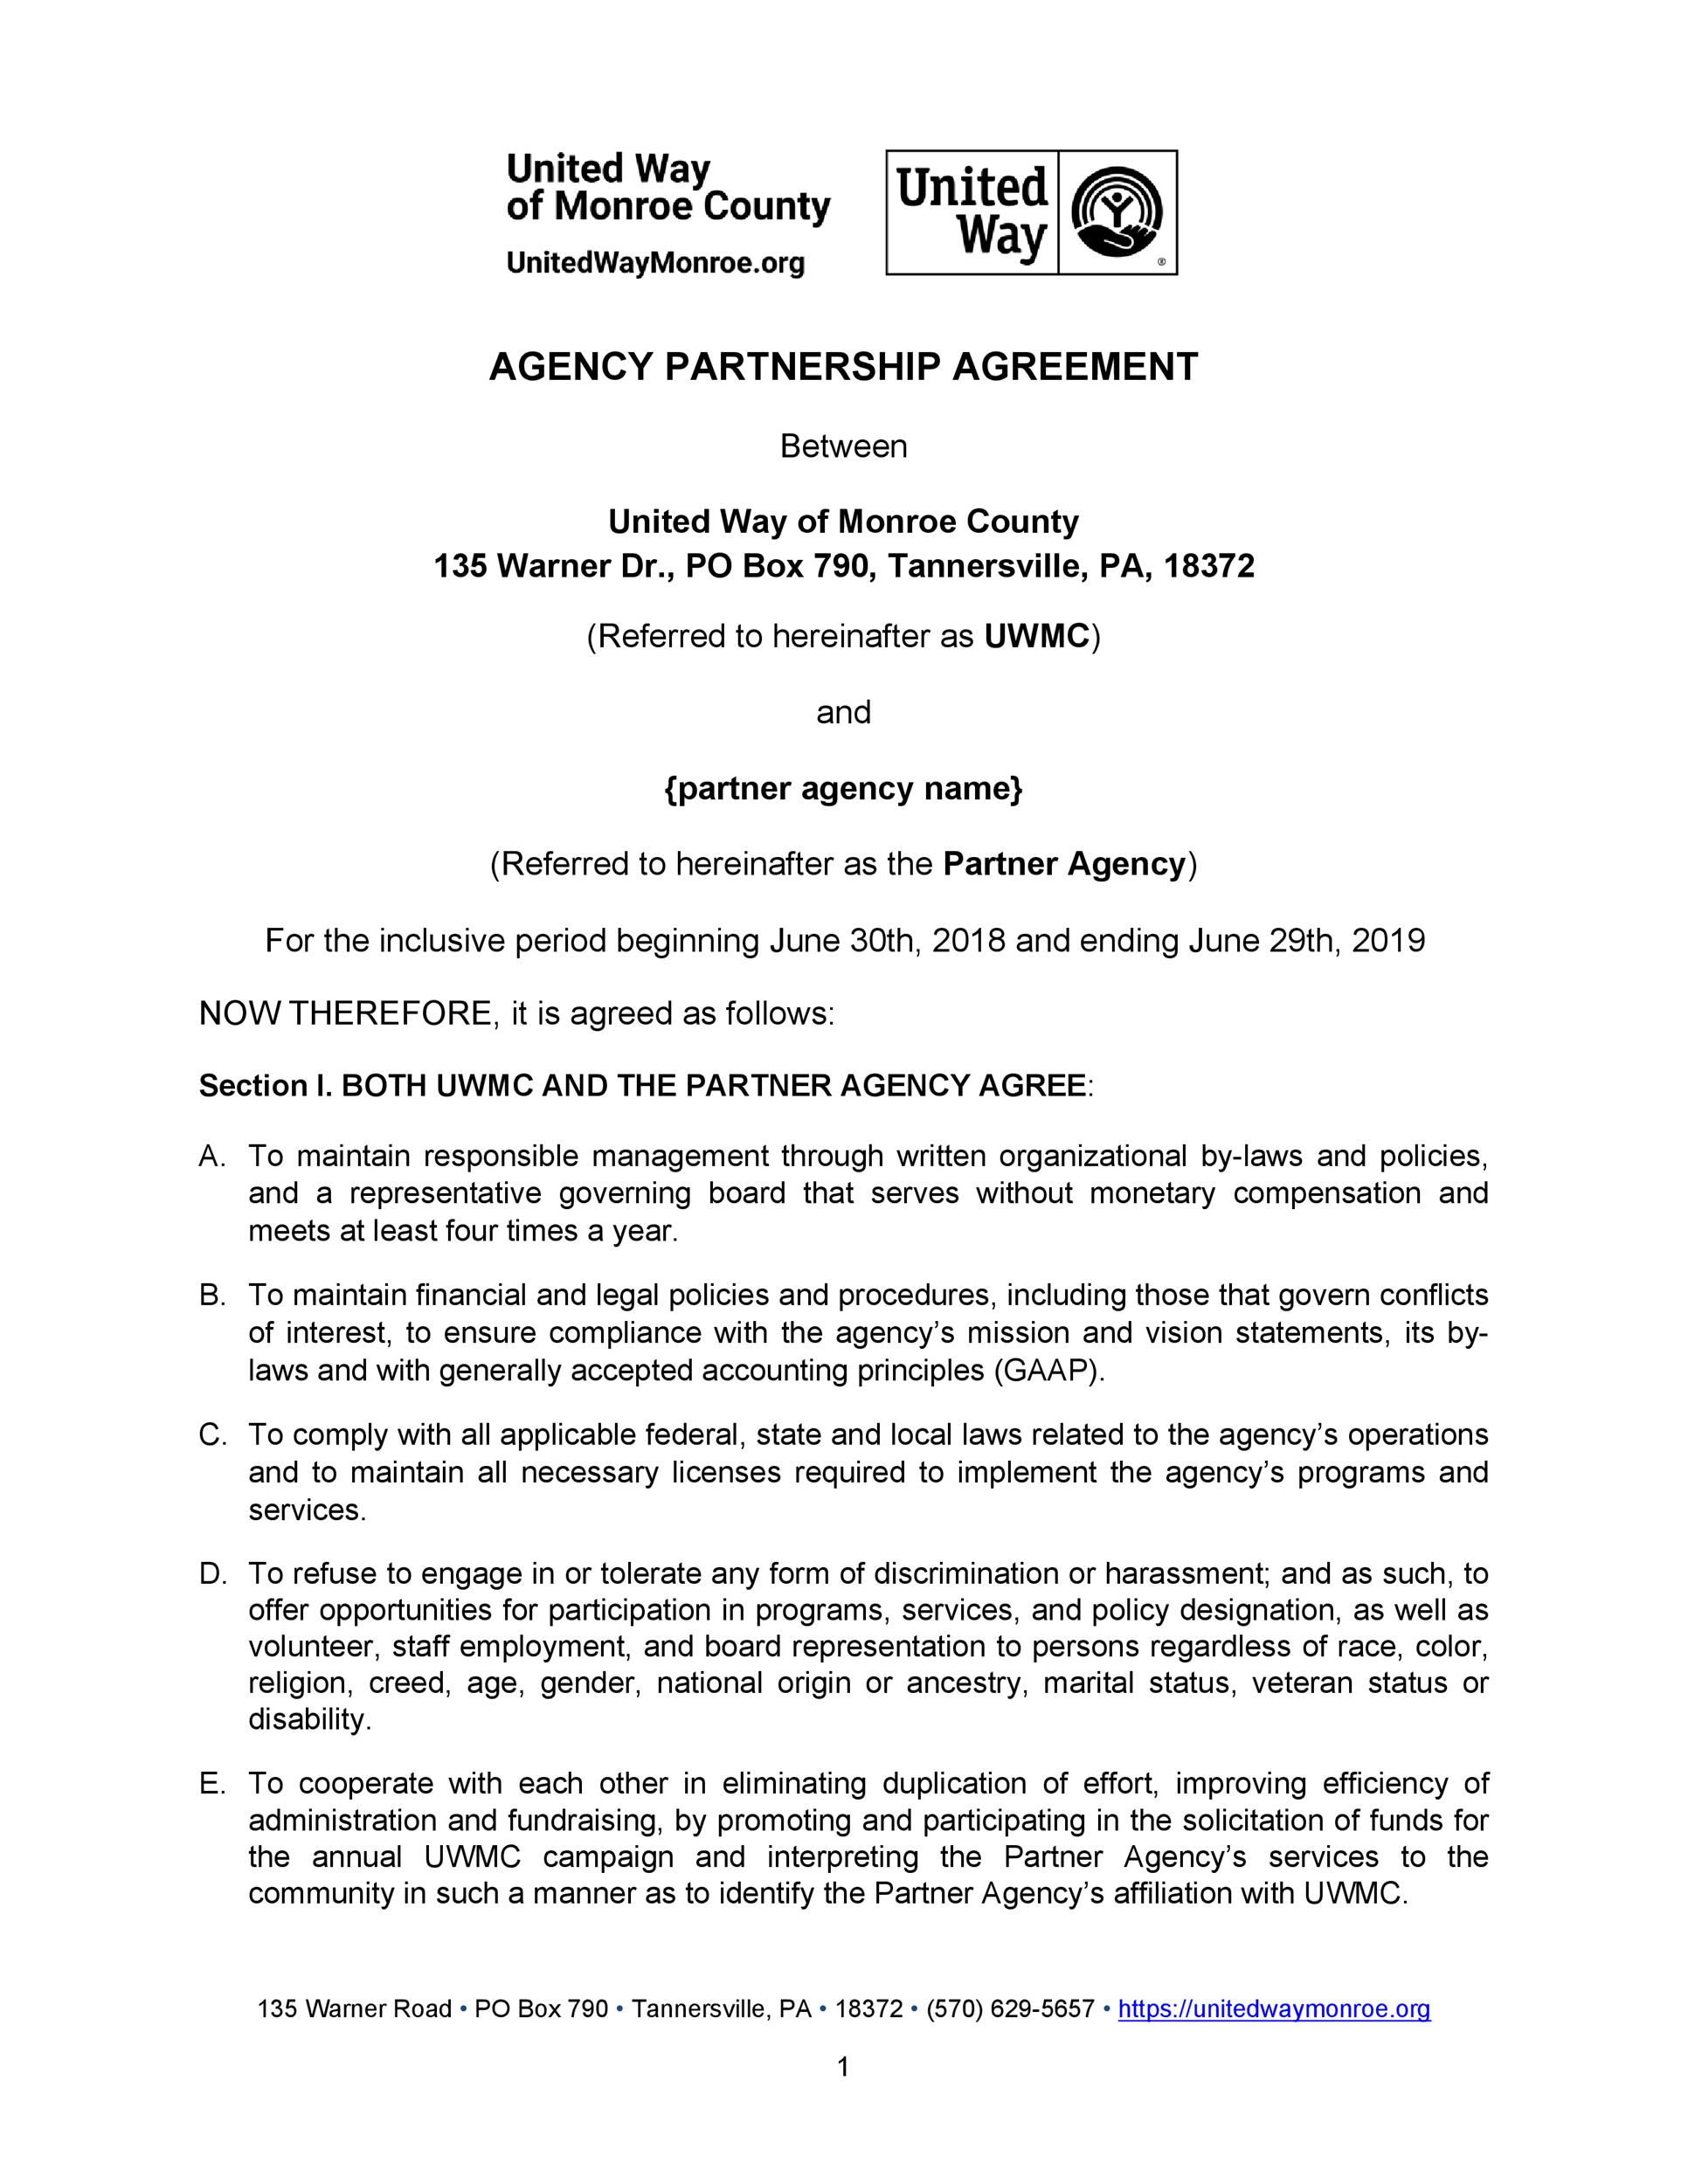 Free agency agreement 50